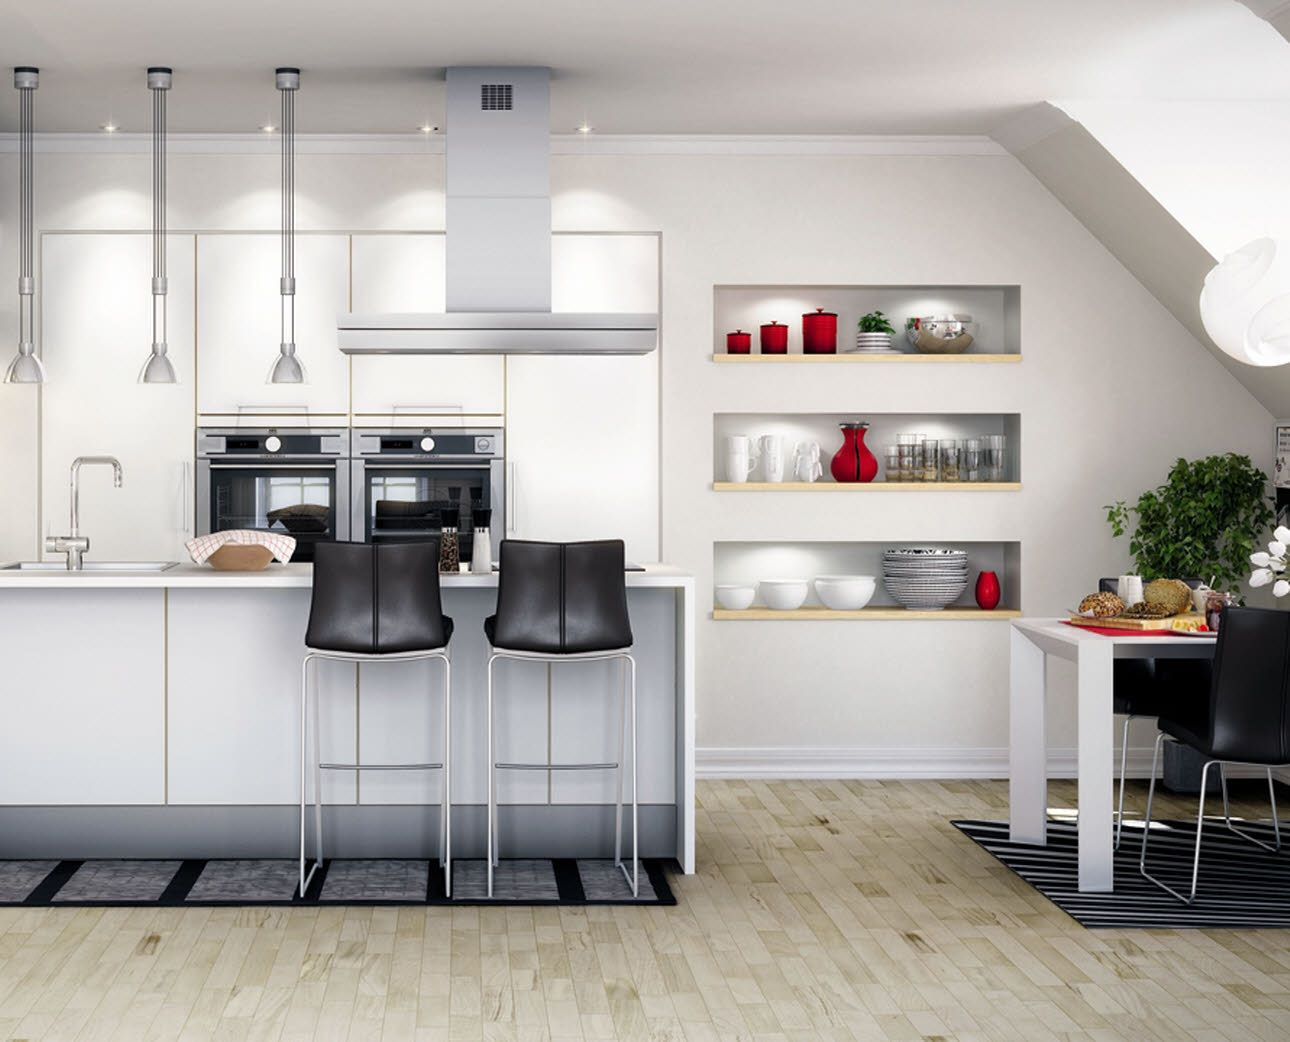 Open-plan kitchen solution with clean lines